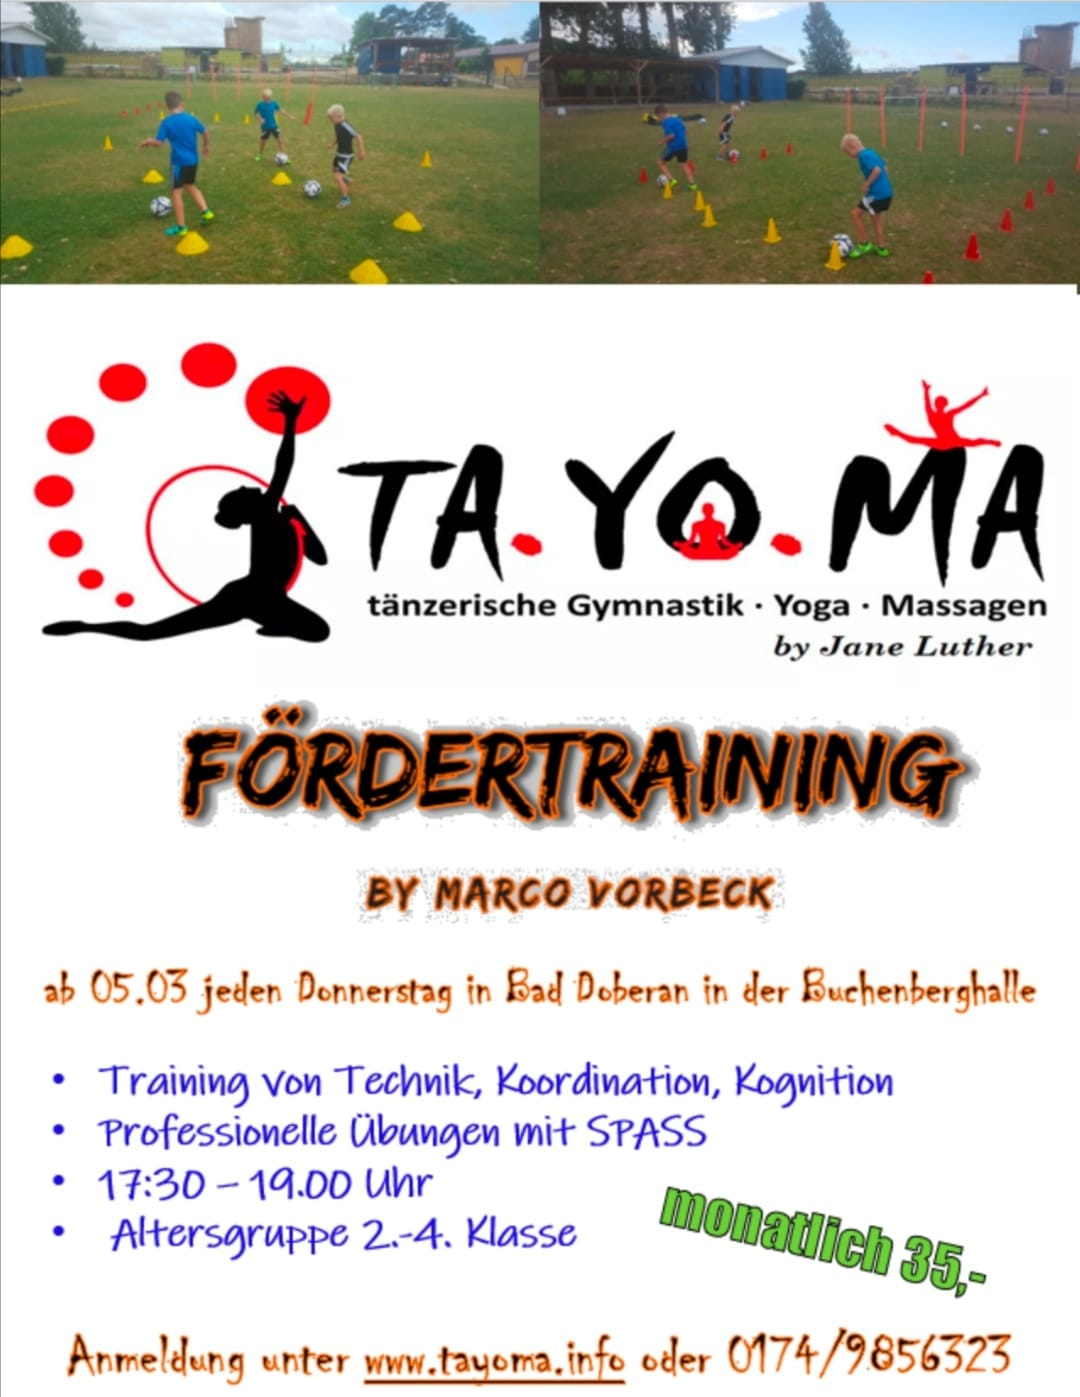 Fördertraining by Marco Vorbeck